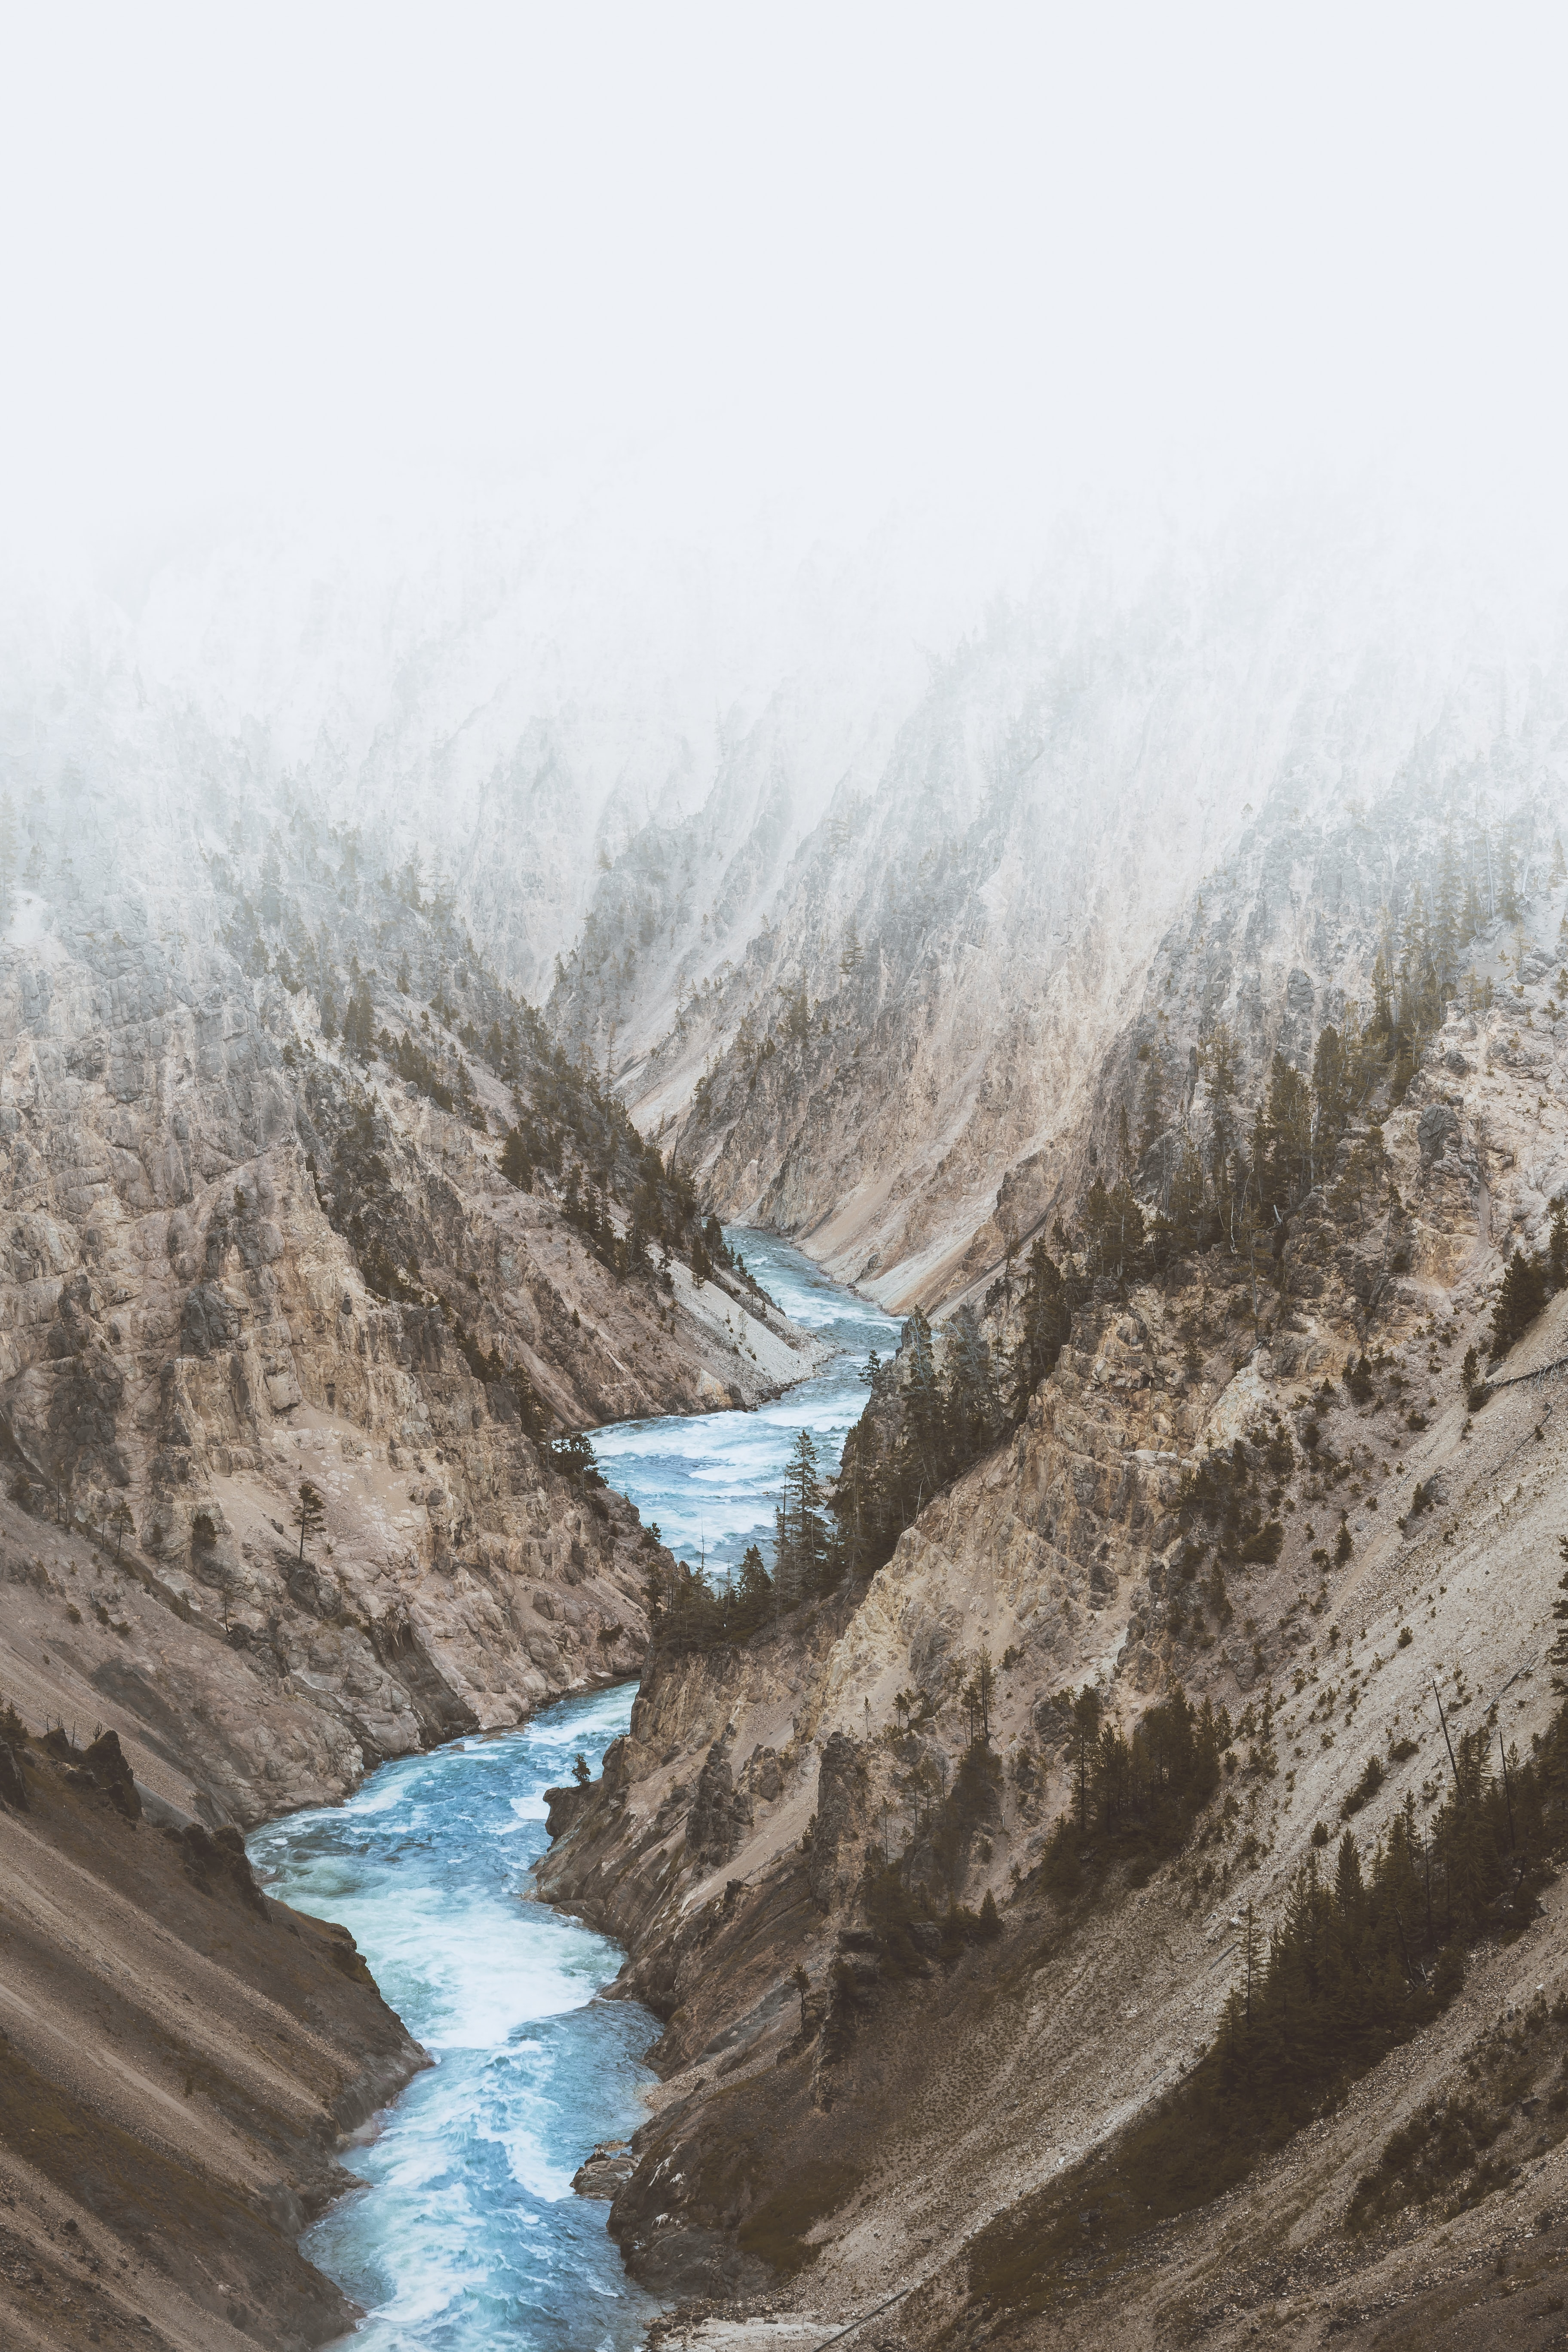 A river rushes through the valley of deserted mountain sides in Yellowstone